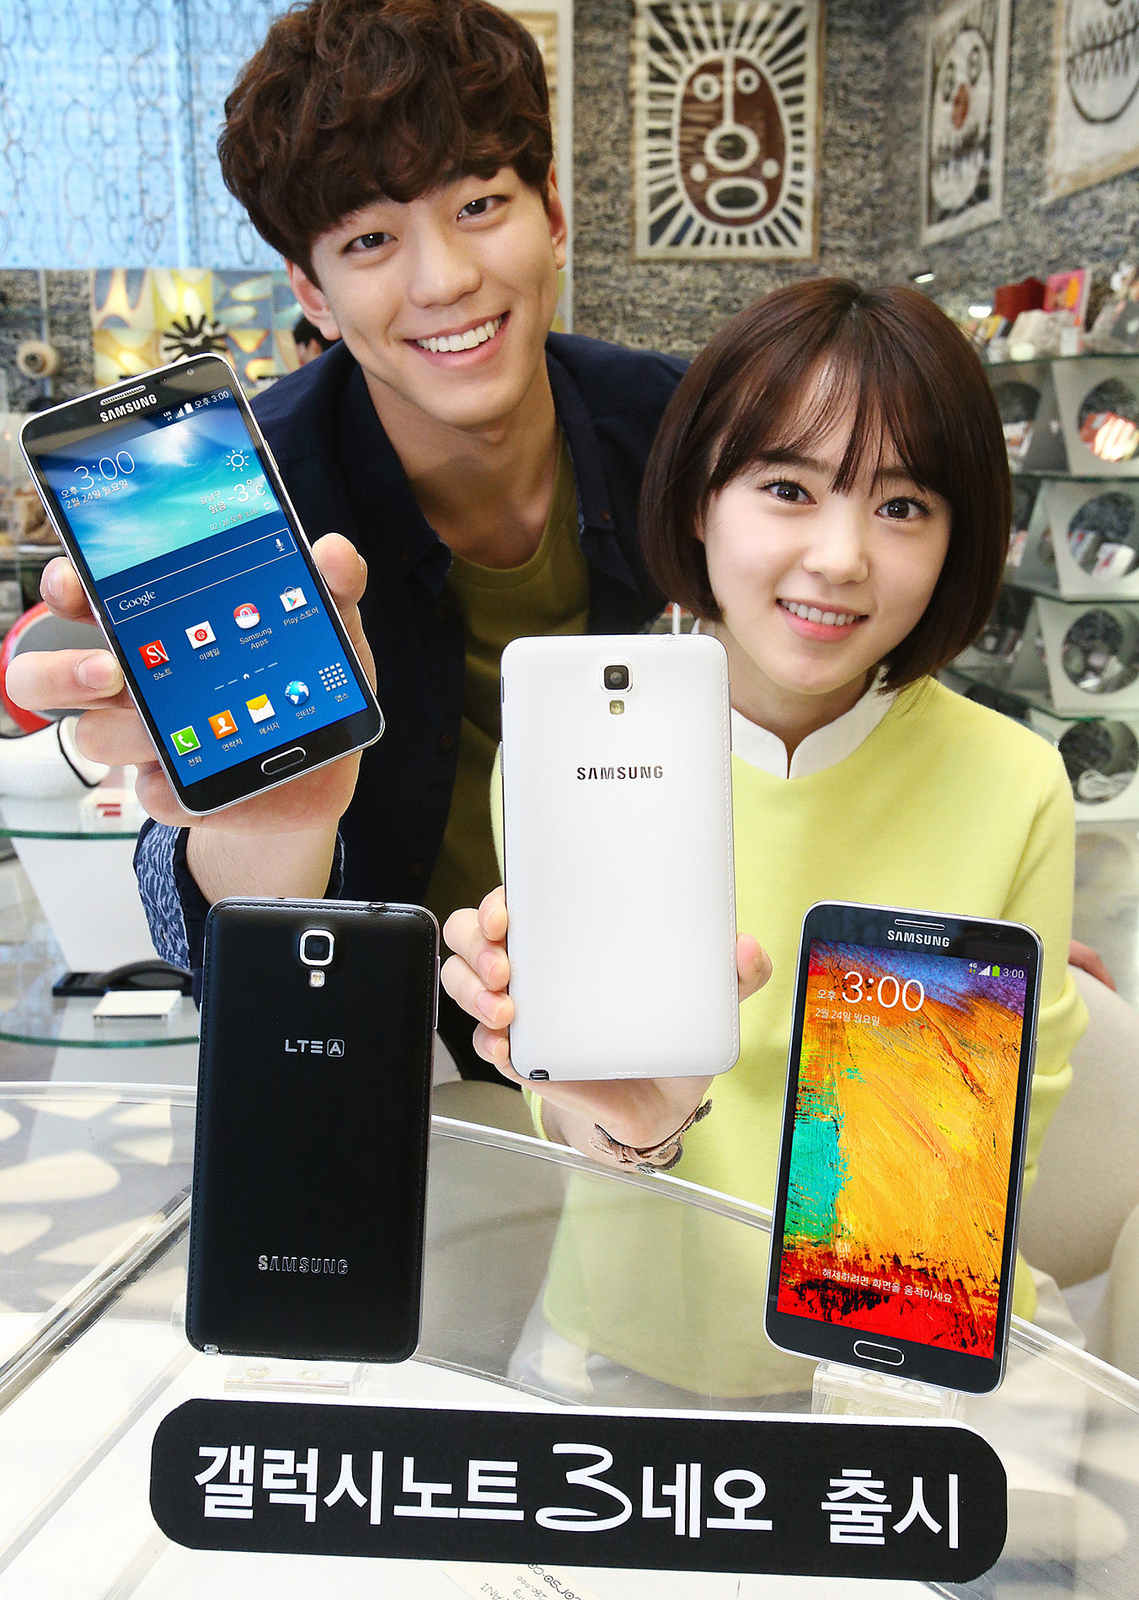 Samsung-launches-the-Galaxy-Note-3-Neo-in-South-Korea (1)